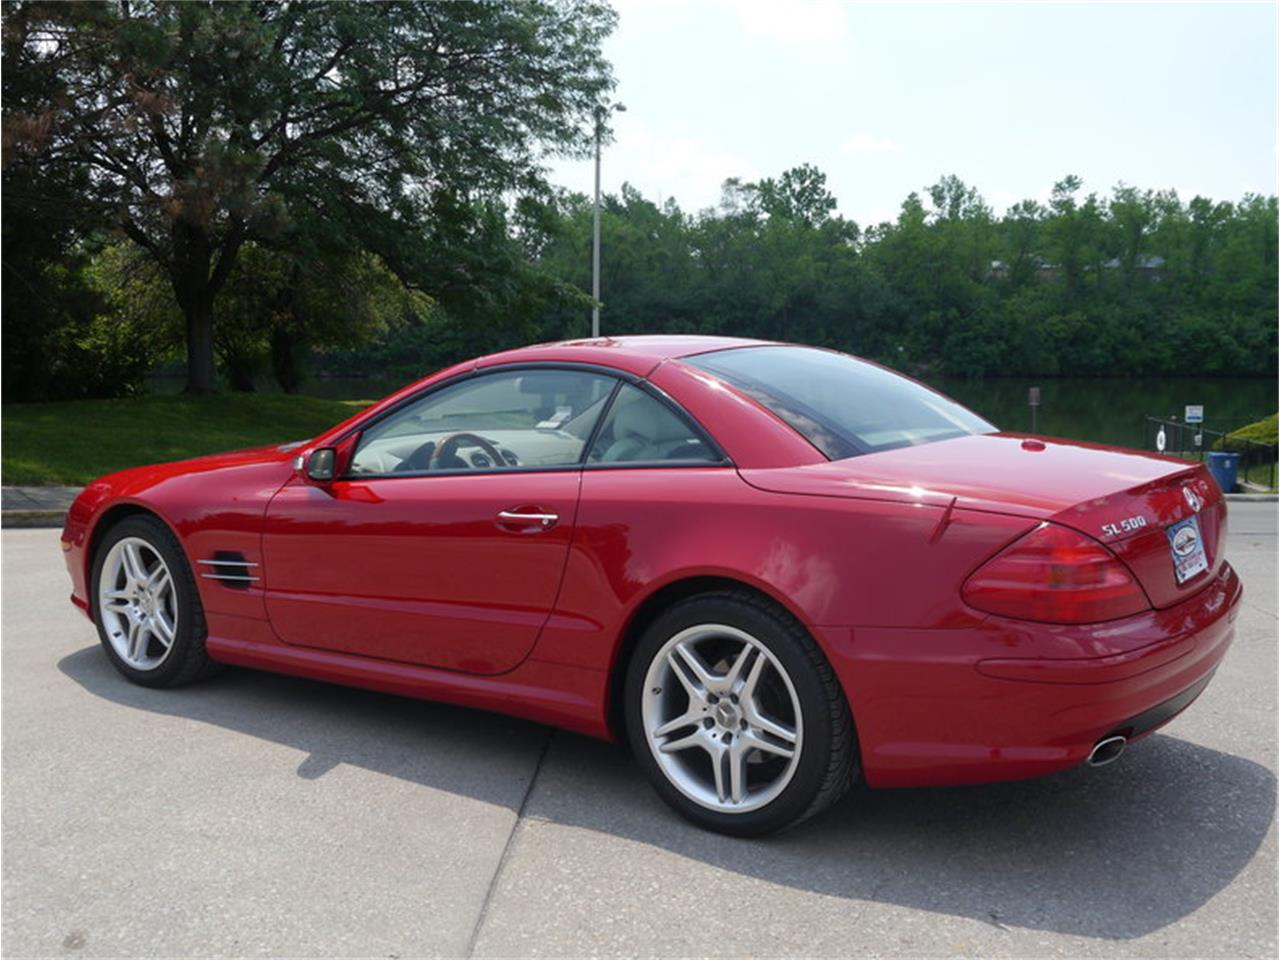 Large Picture of 2006 Mercedes-Benz SL500 located in Alsip Illinois - $26,900.00 Offered by Midwest Car Exchange - LEGR